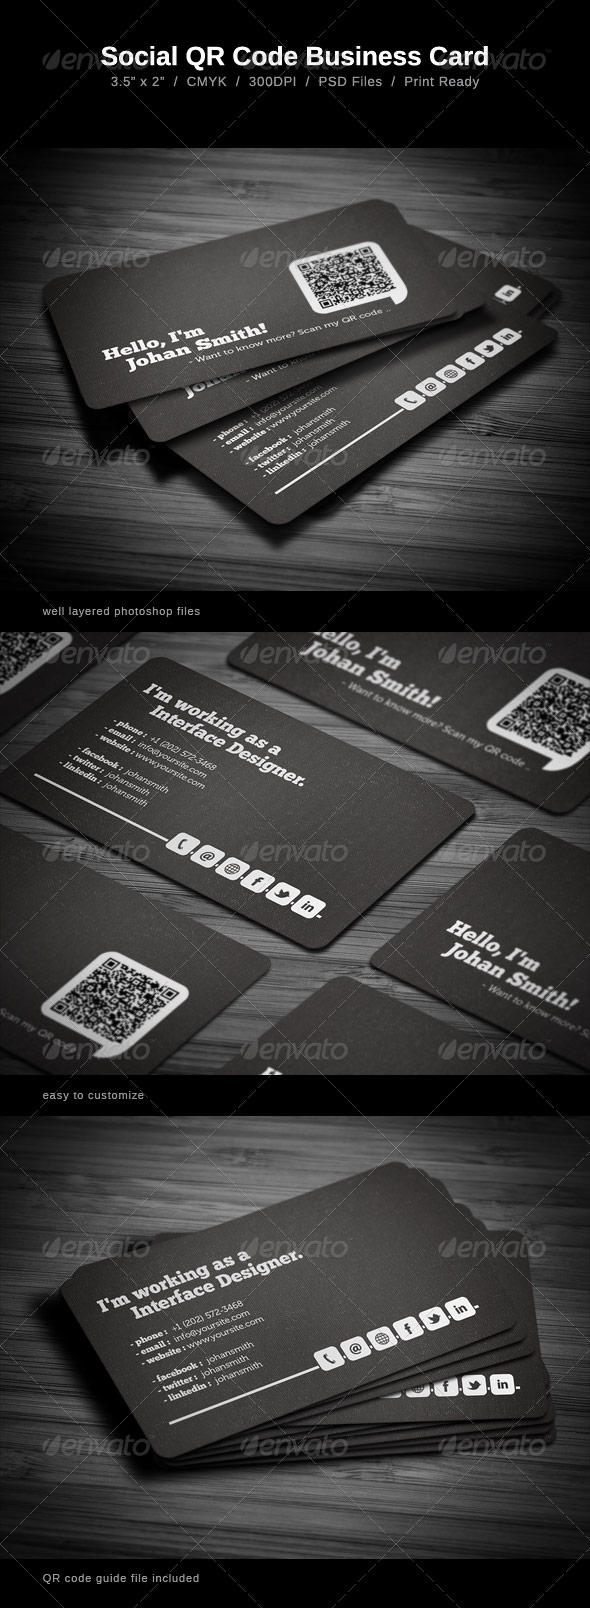 5 noteworthy back of business cards ideas business card qr back of card template flashek Images